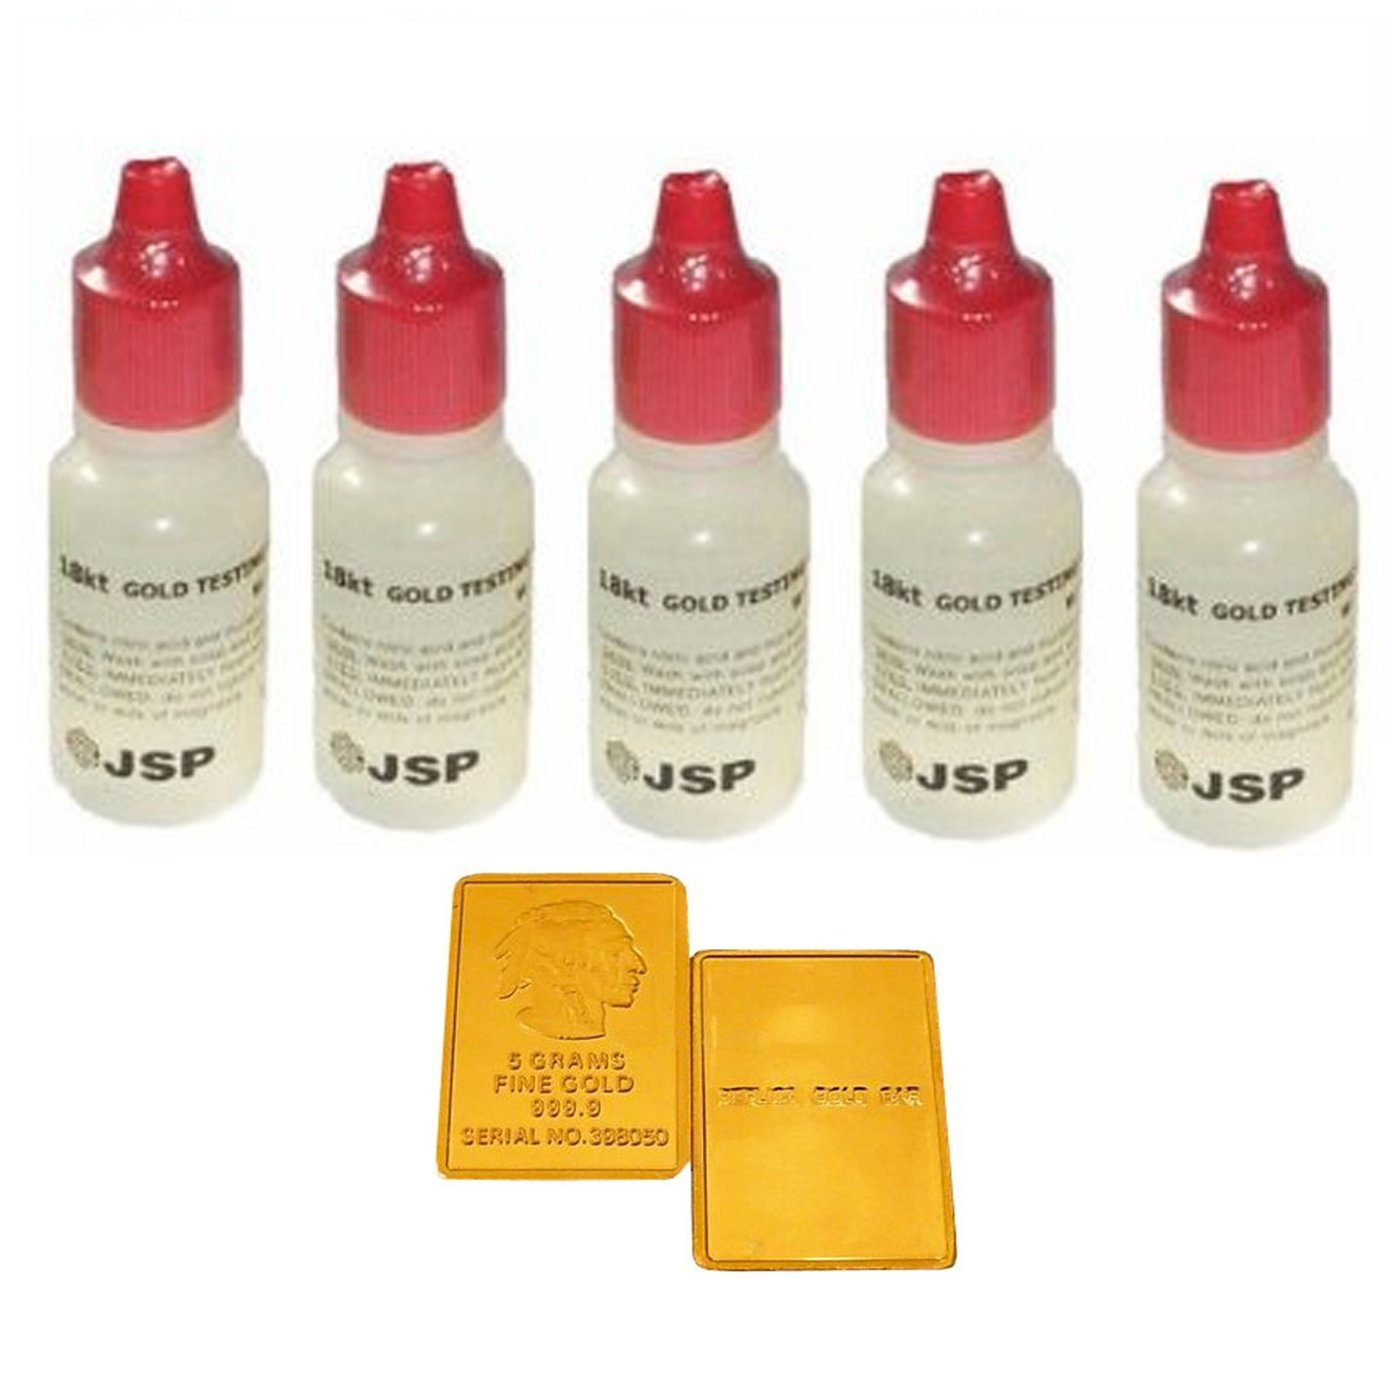 Testing & Identification Tools 6 Gold Testing Acid Jewelry Test Kit And Scratch Stone Detect Check Metals Lot Latest Technology